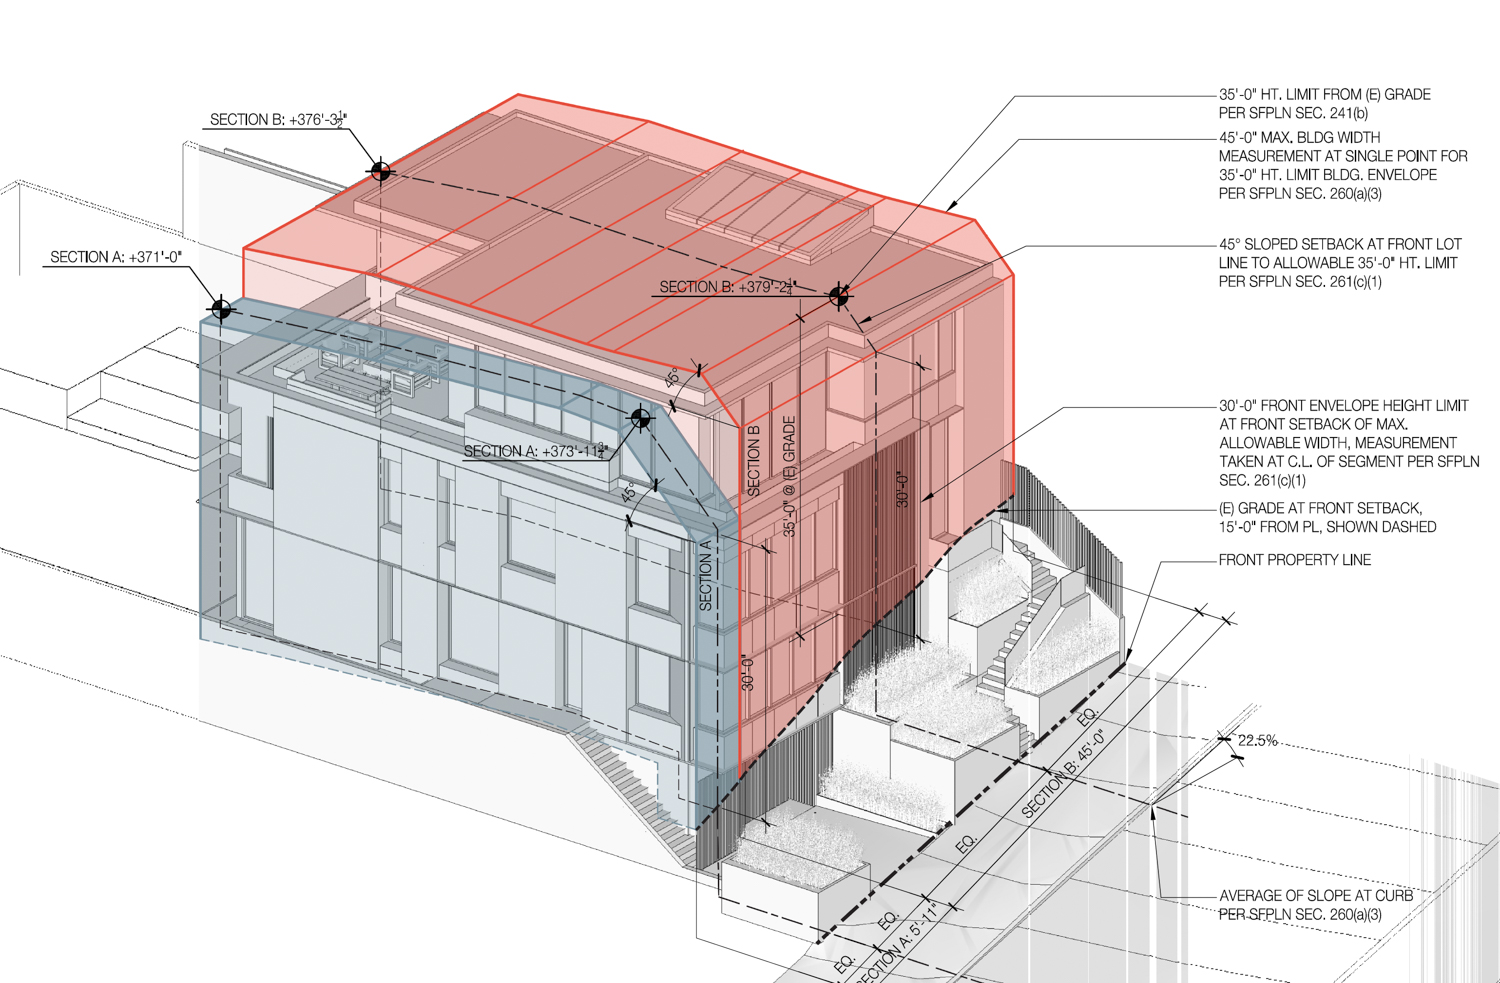 3669 21st Street building envelop, drawing by John Maniscalco Architecture